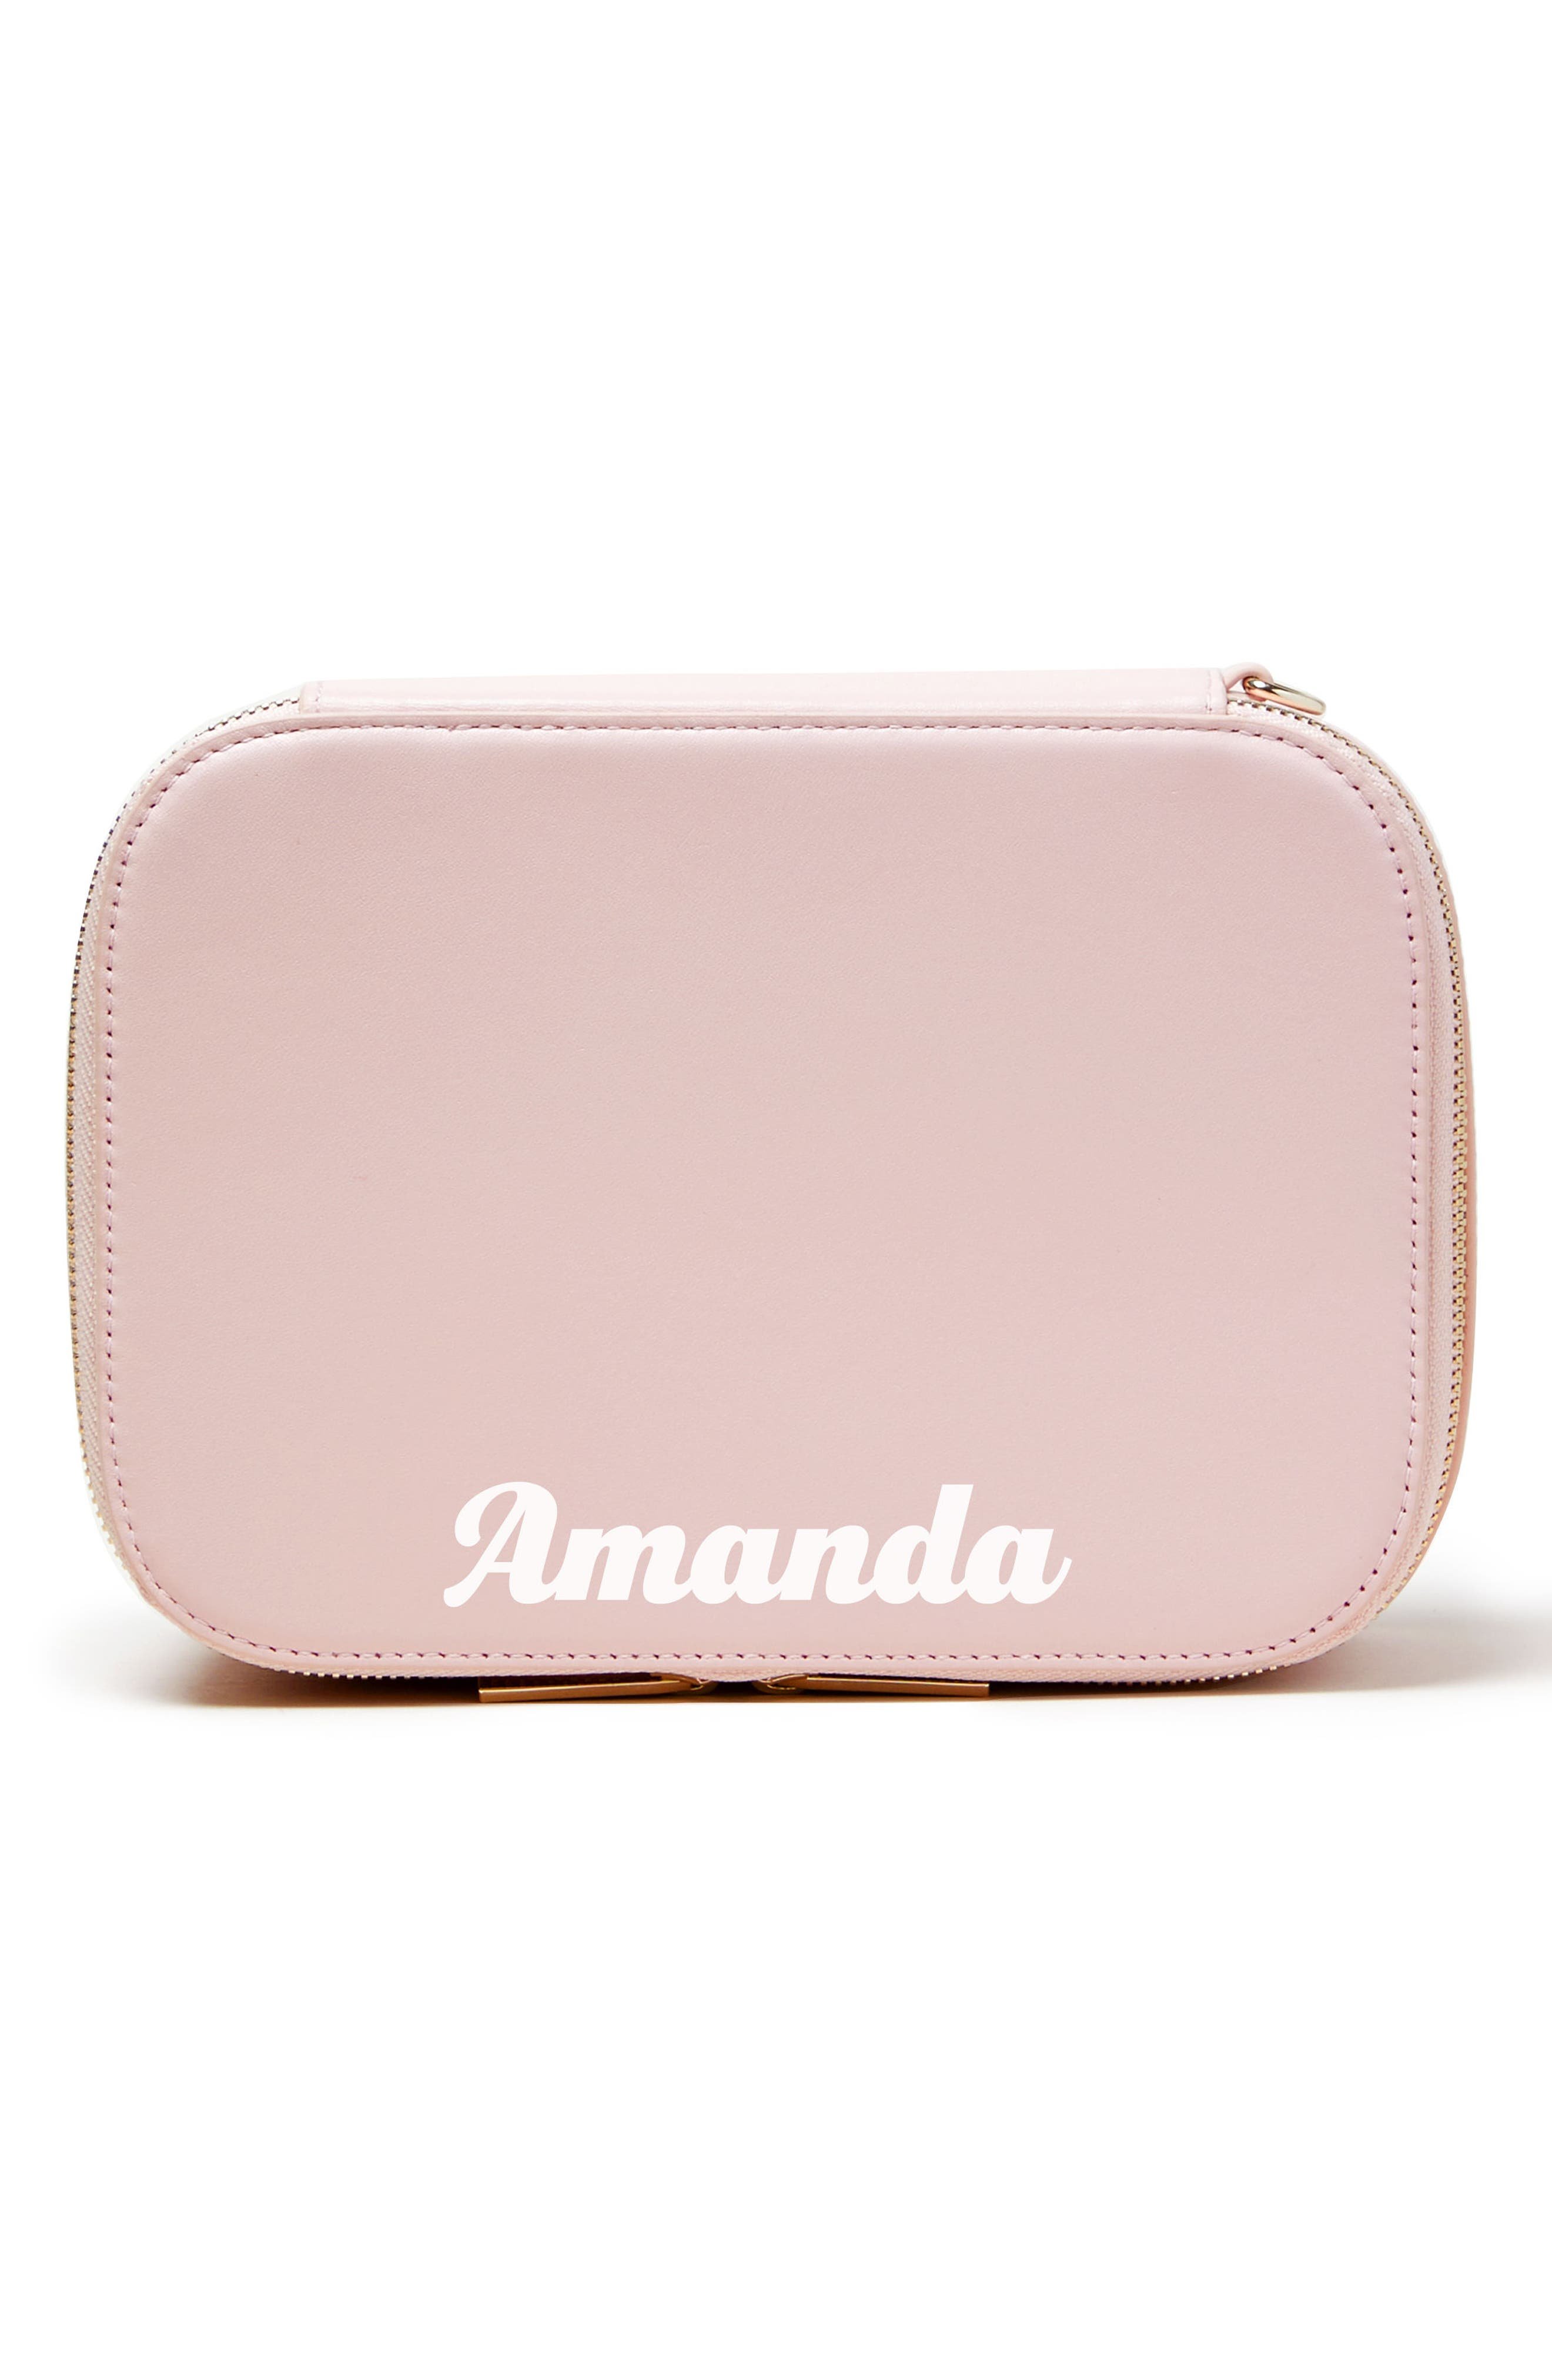 Main Image - Pop & Suki Bigger Personalized Makeup Case (Nordstrom Exclusive)